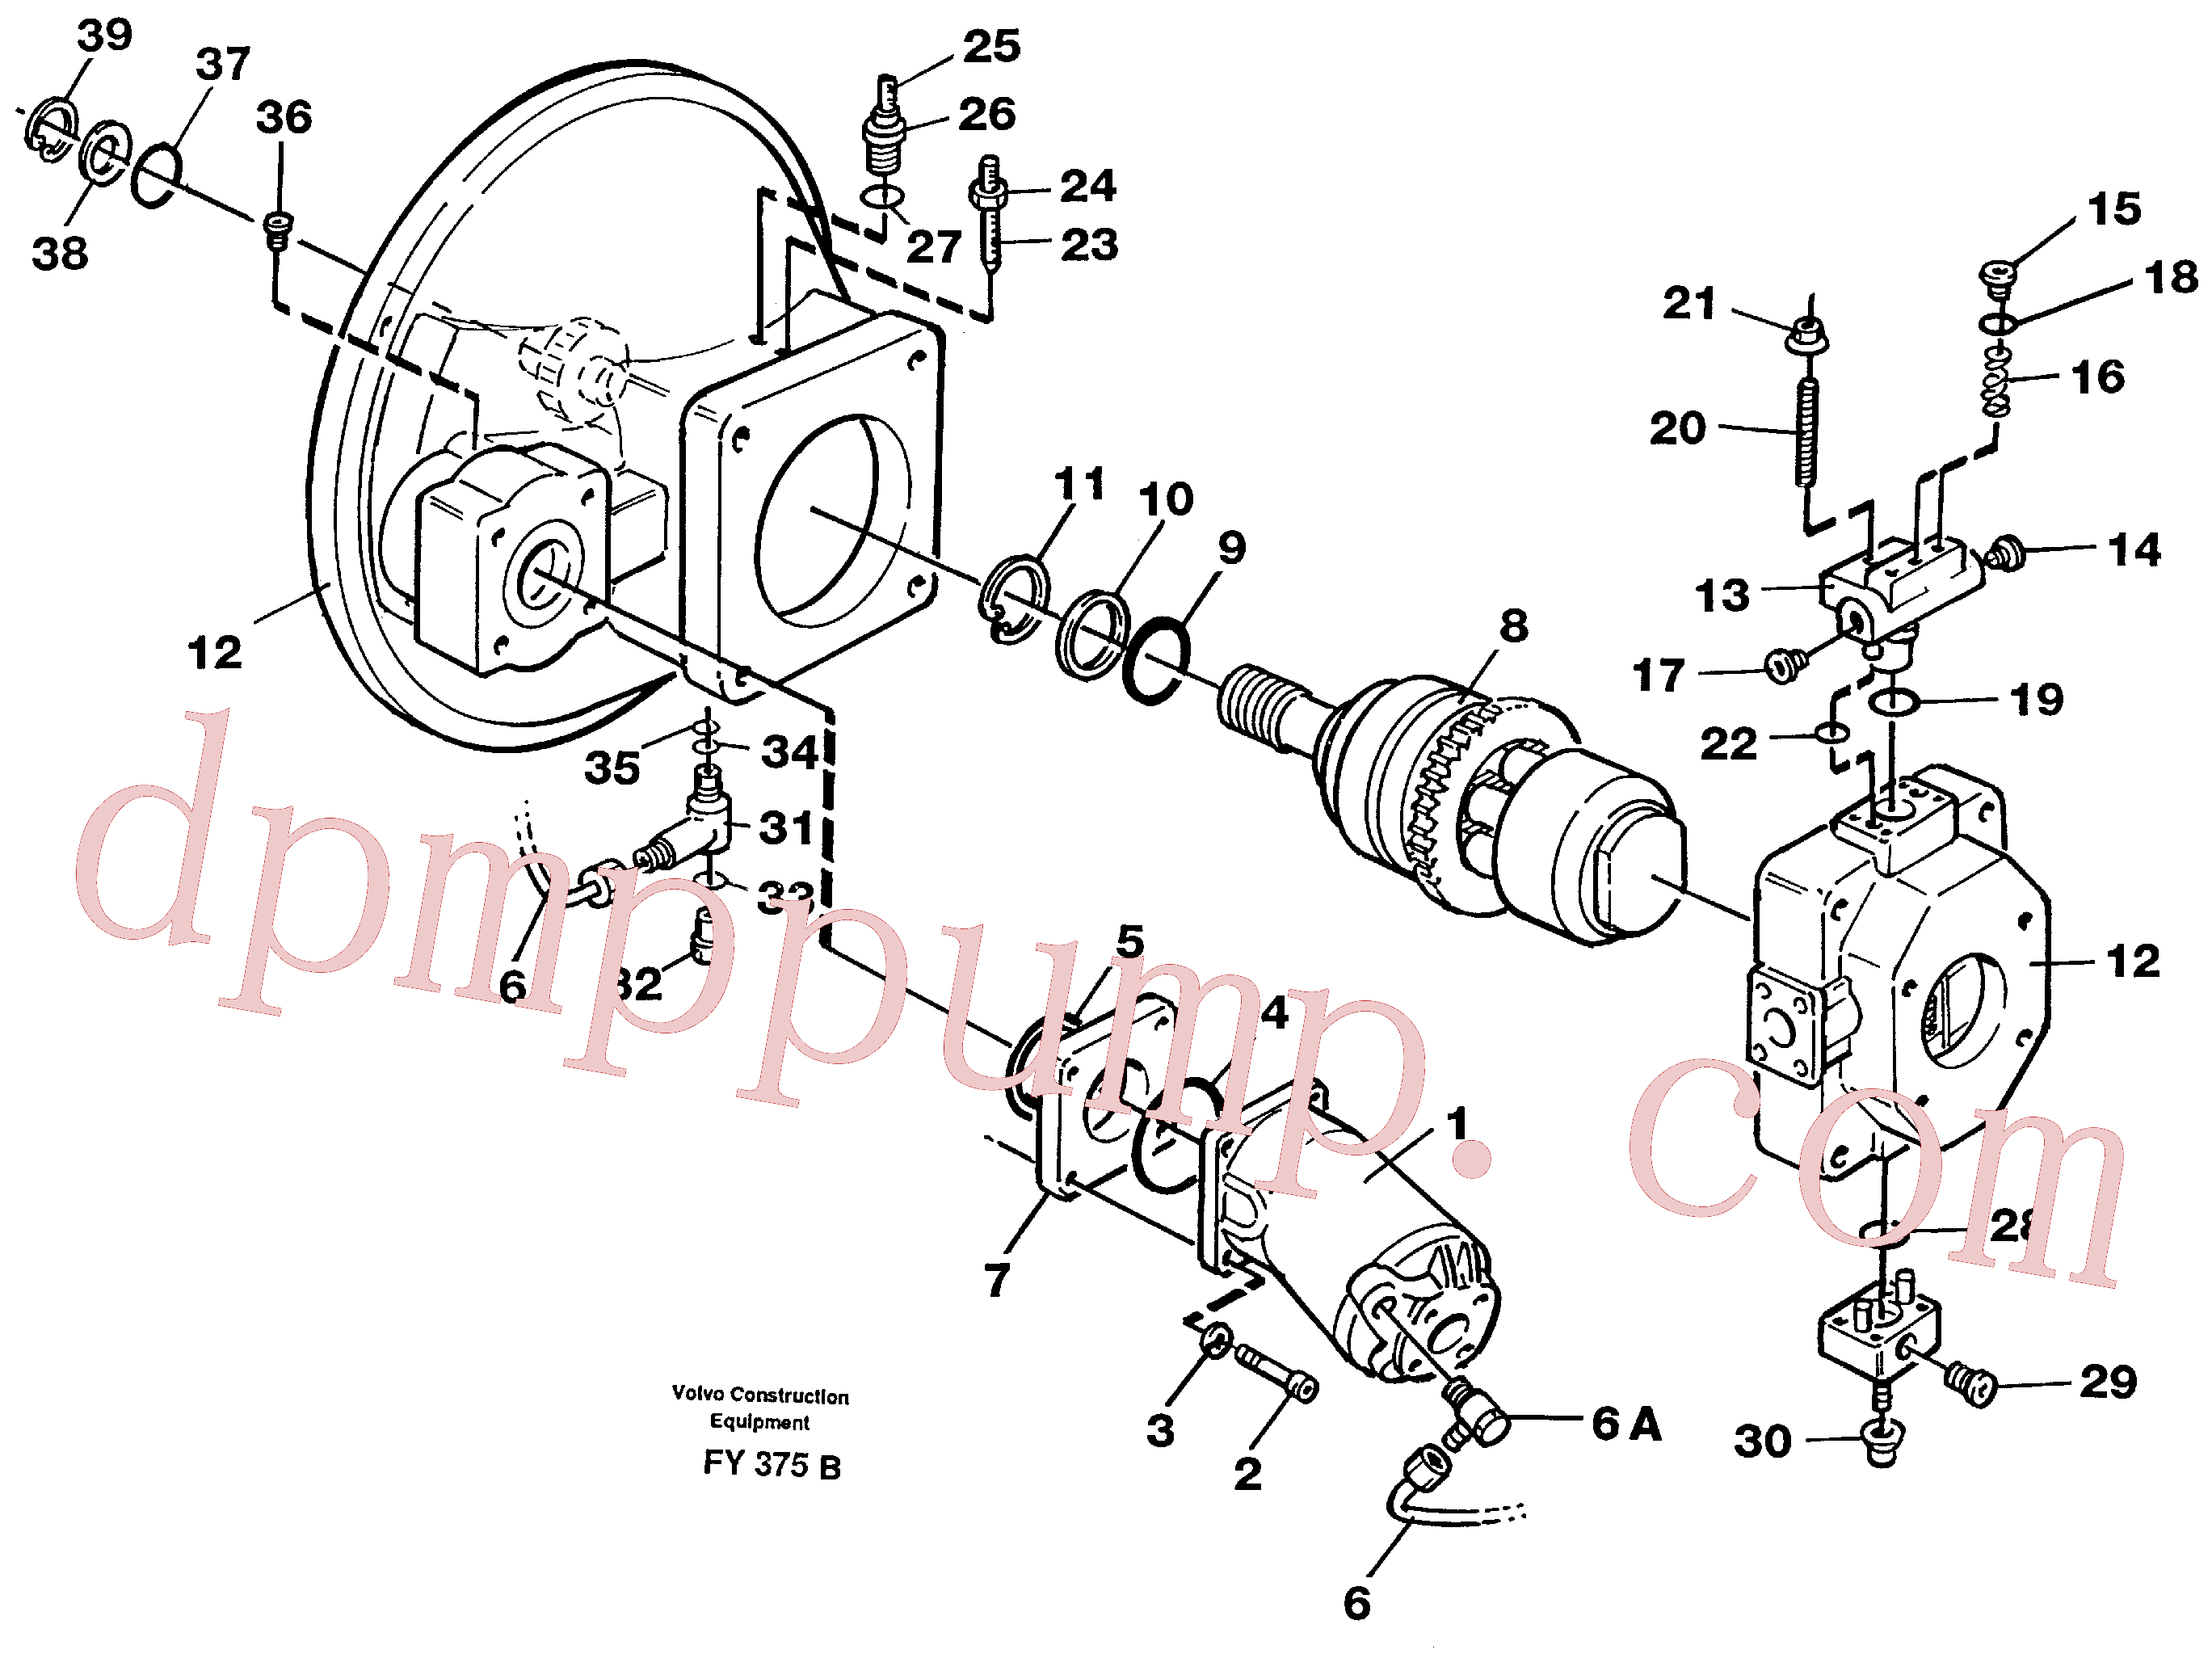 VOE11992753 for Volvo Pump gear box(FY375B assembly)